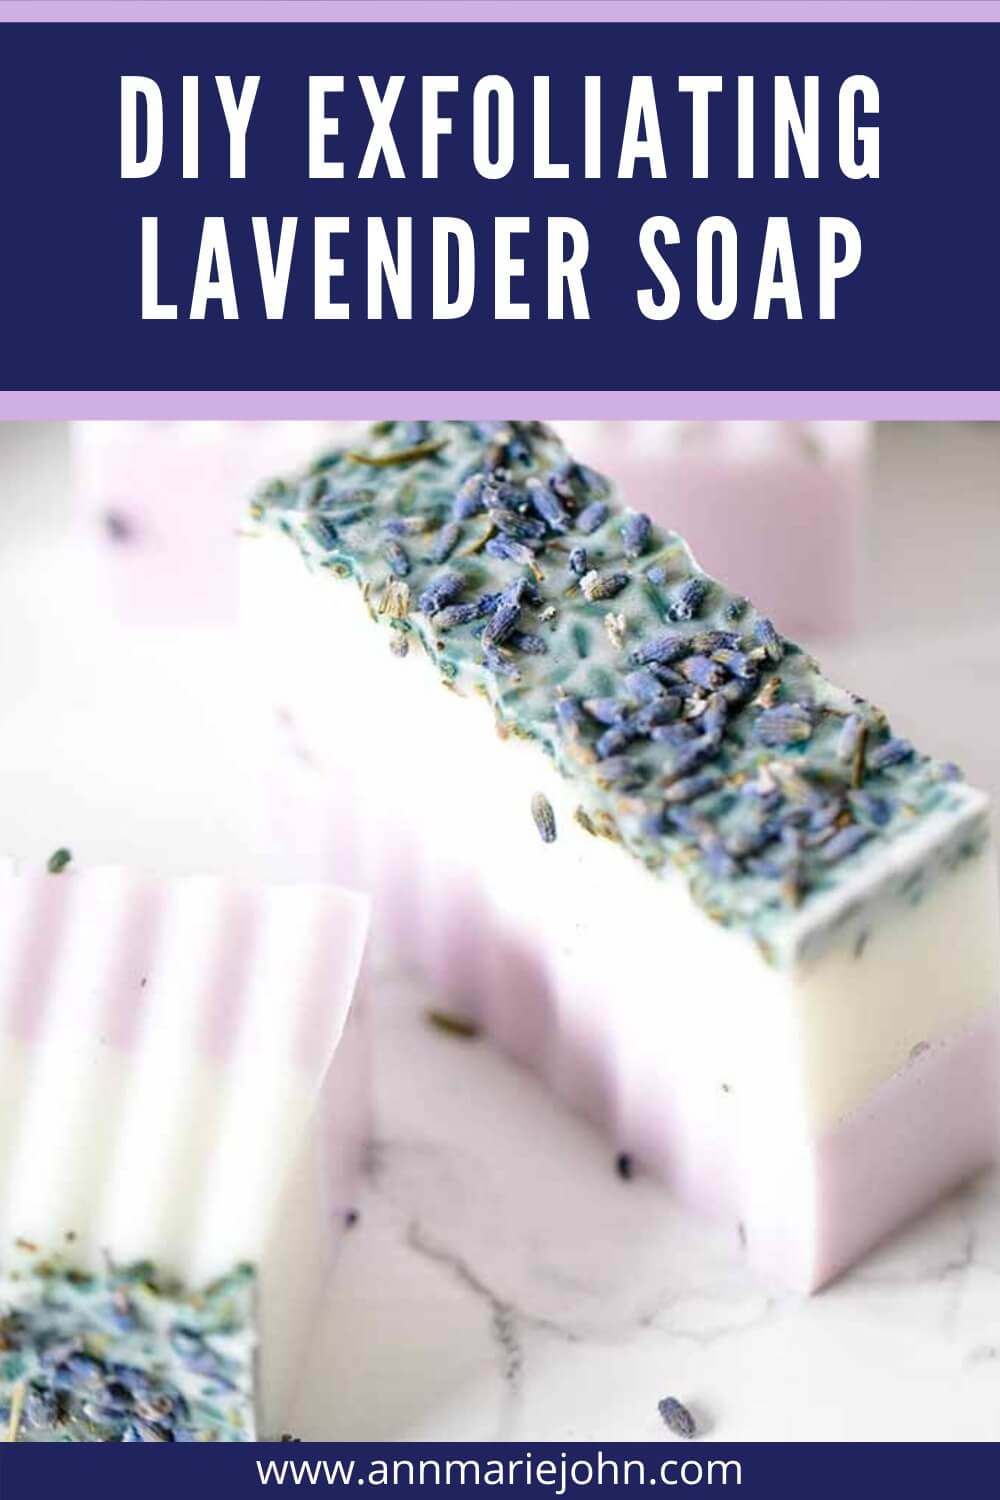 DIY Exfoliating Lavender Soap